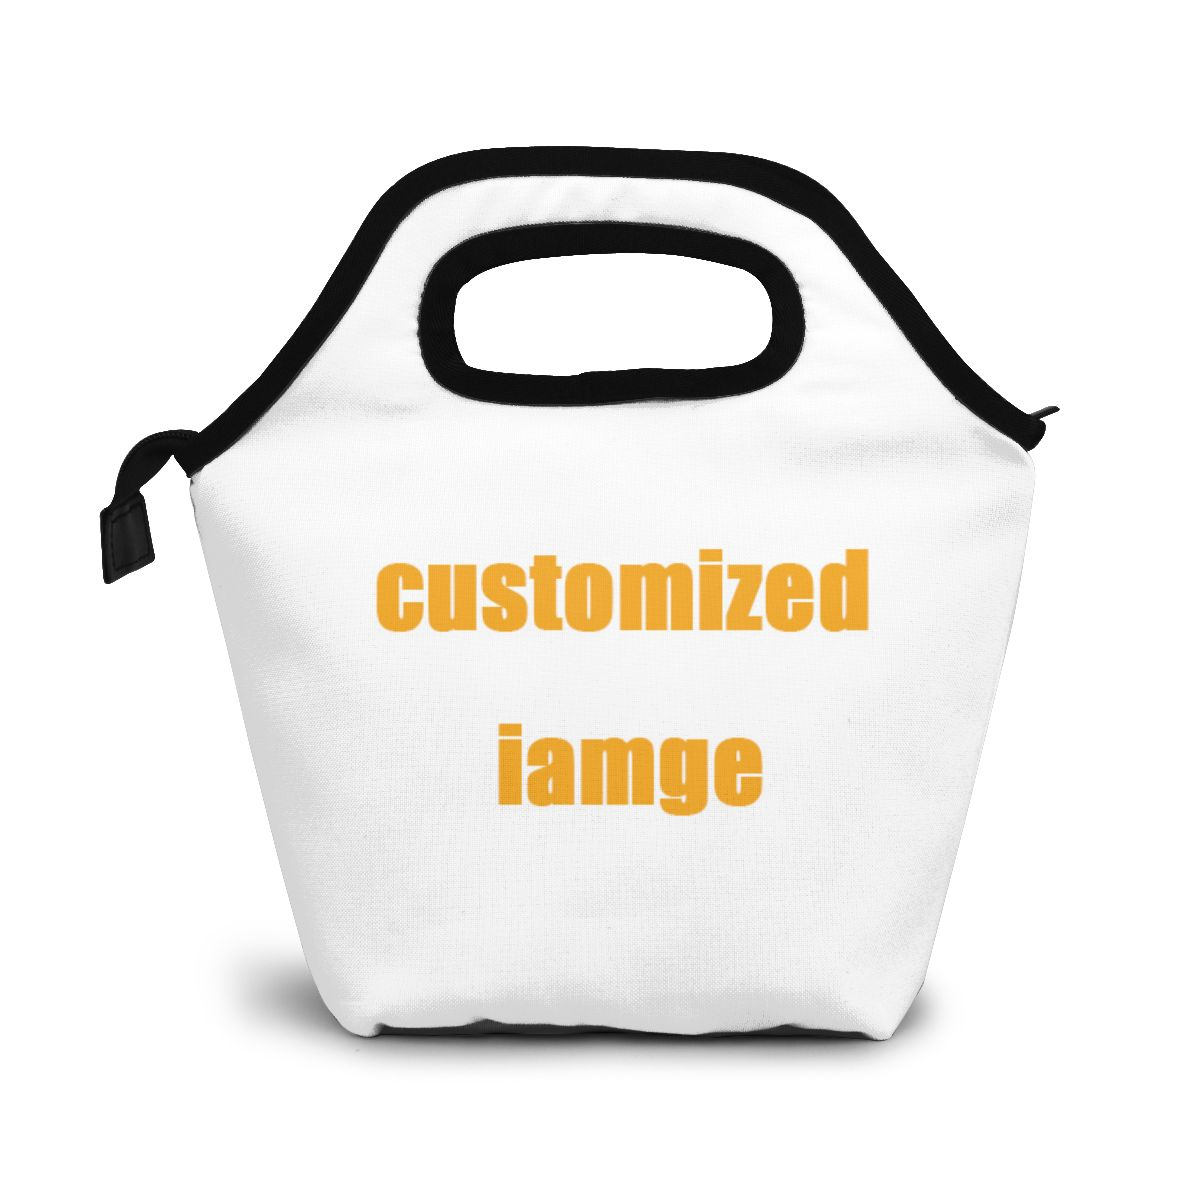 NOISYDESIGNS Customized New Fresh Insulation Cold Bags Thermal Lunch Bag Waterproof Convenient Leisure Bag Tote Bolsos Mujer